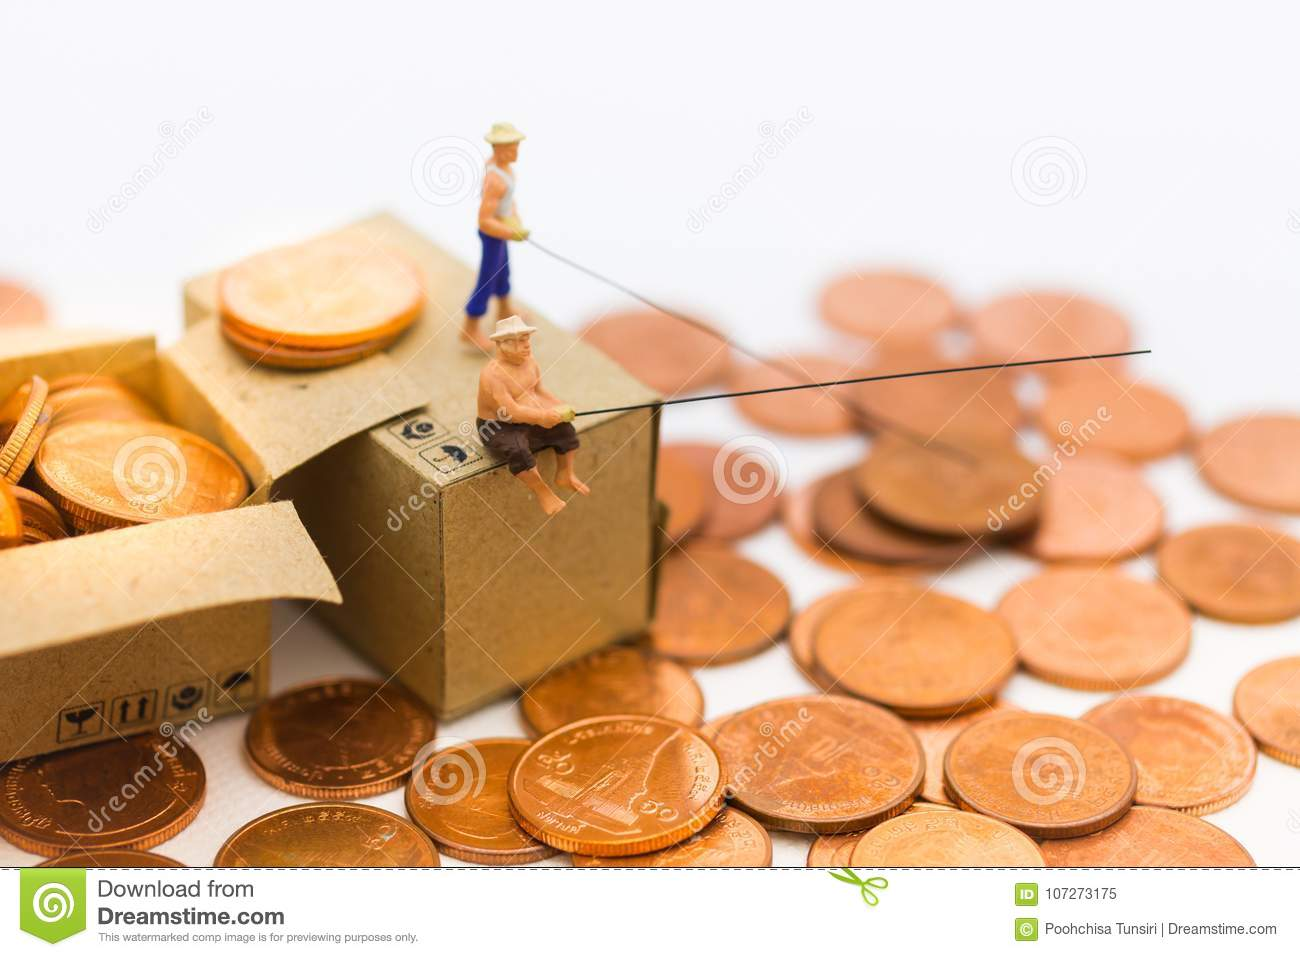 Miniature People People Use The Fishing Rod To Take Money From The